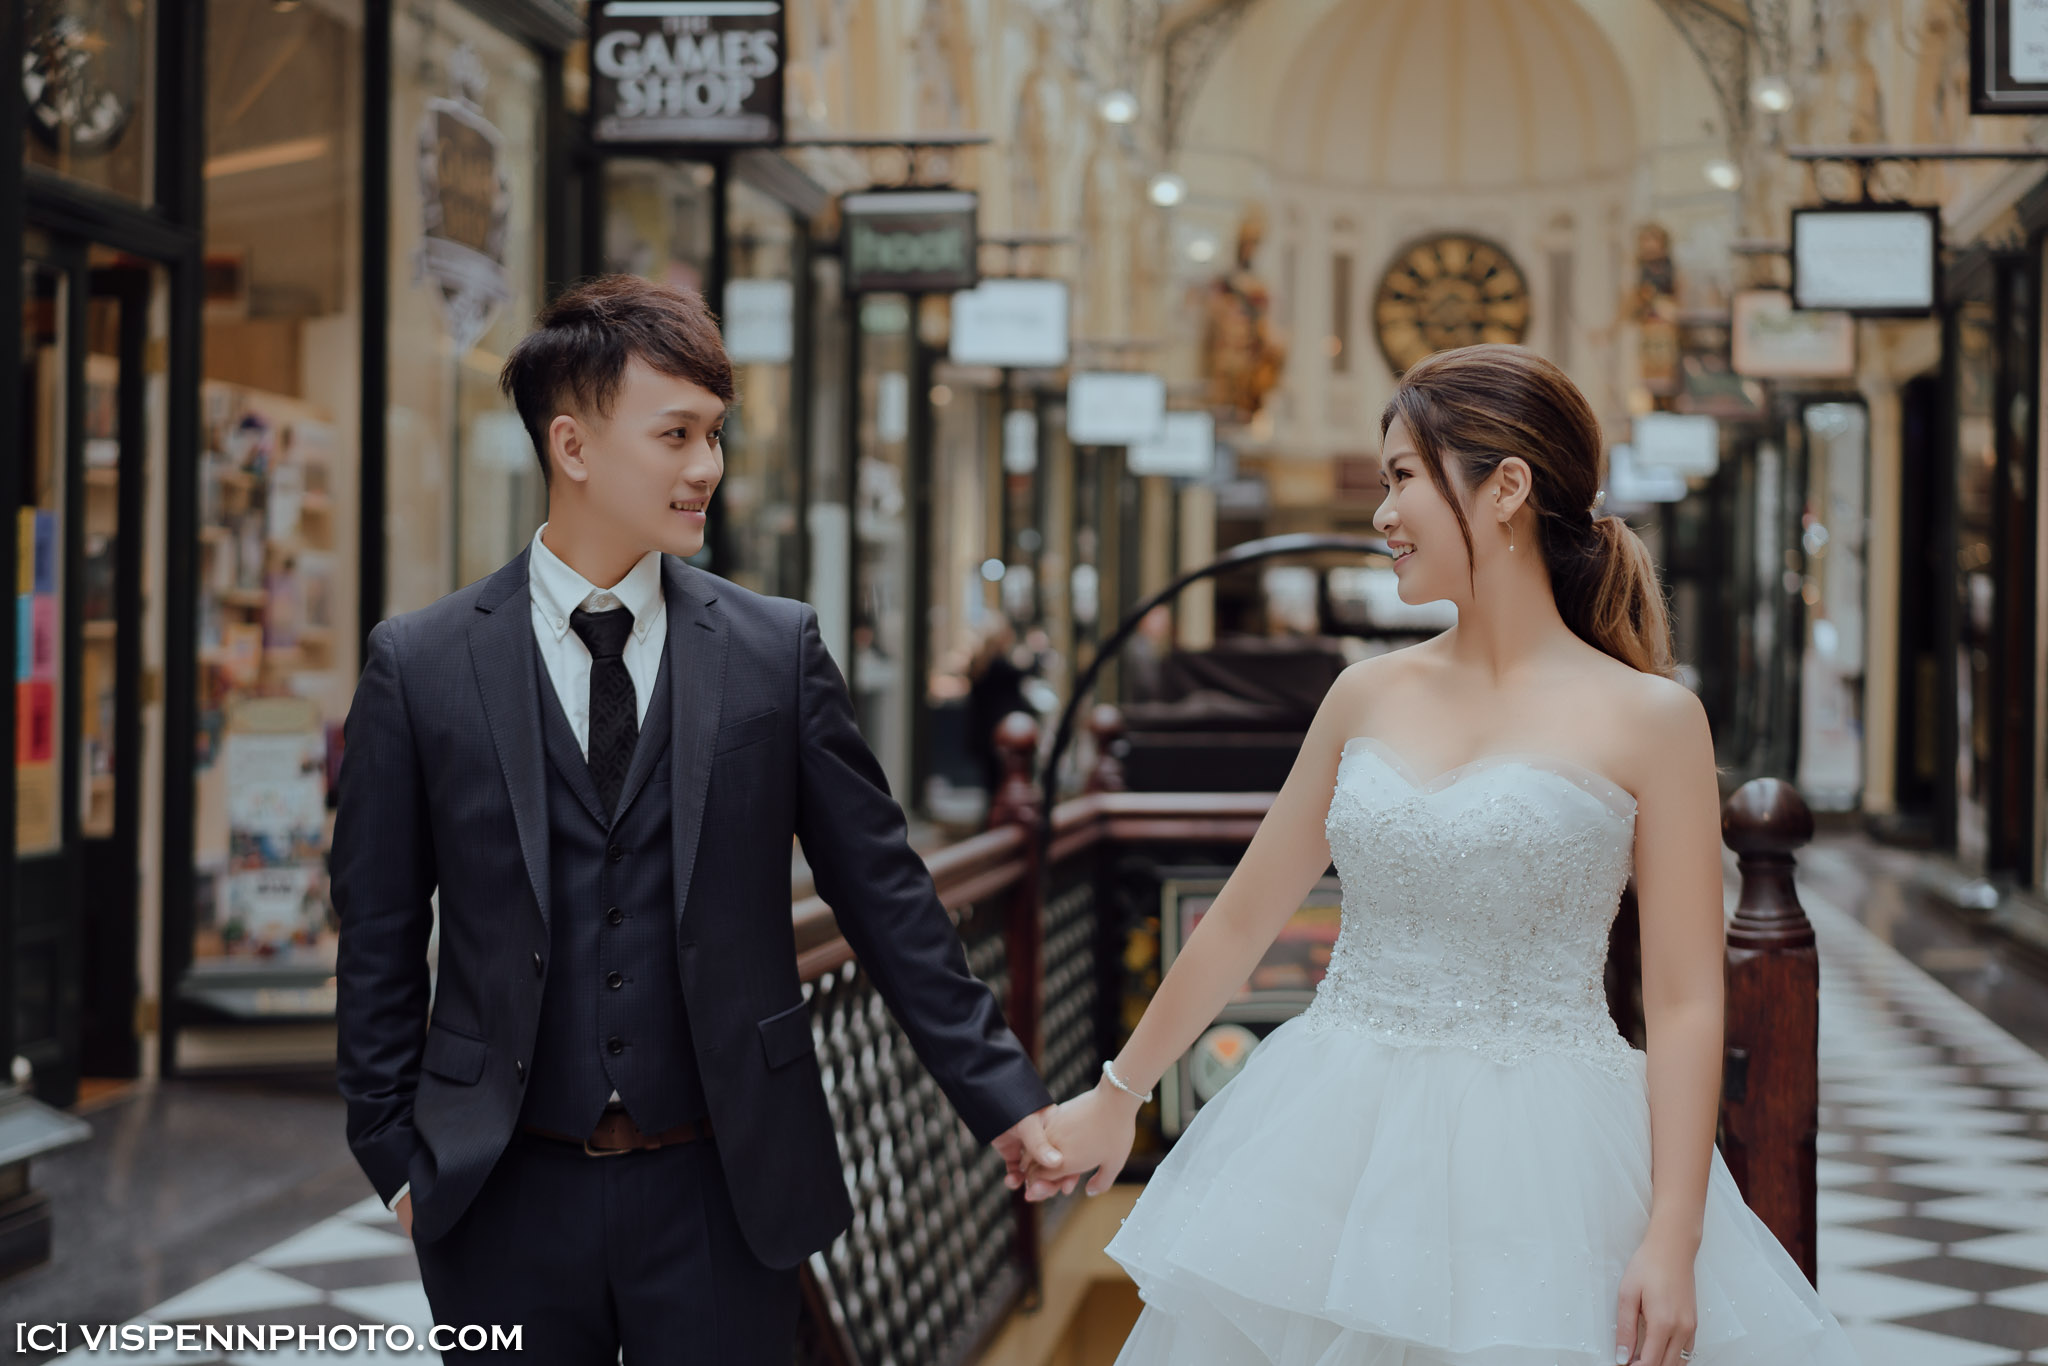 PRE WEDDING Photography Melbourne GiGi 2046 A7R3 ZHPENN